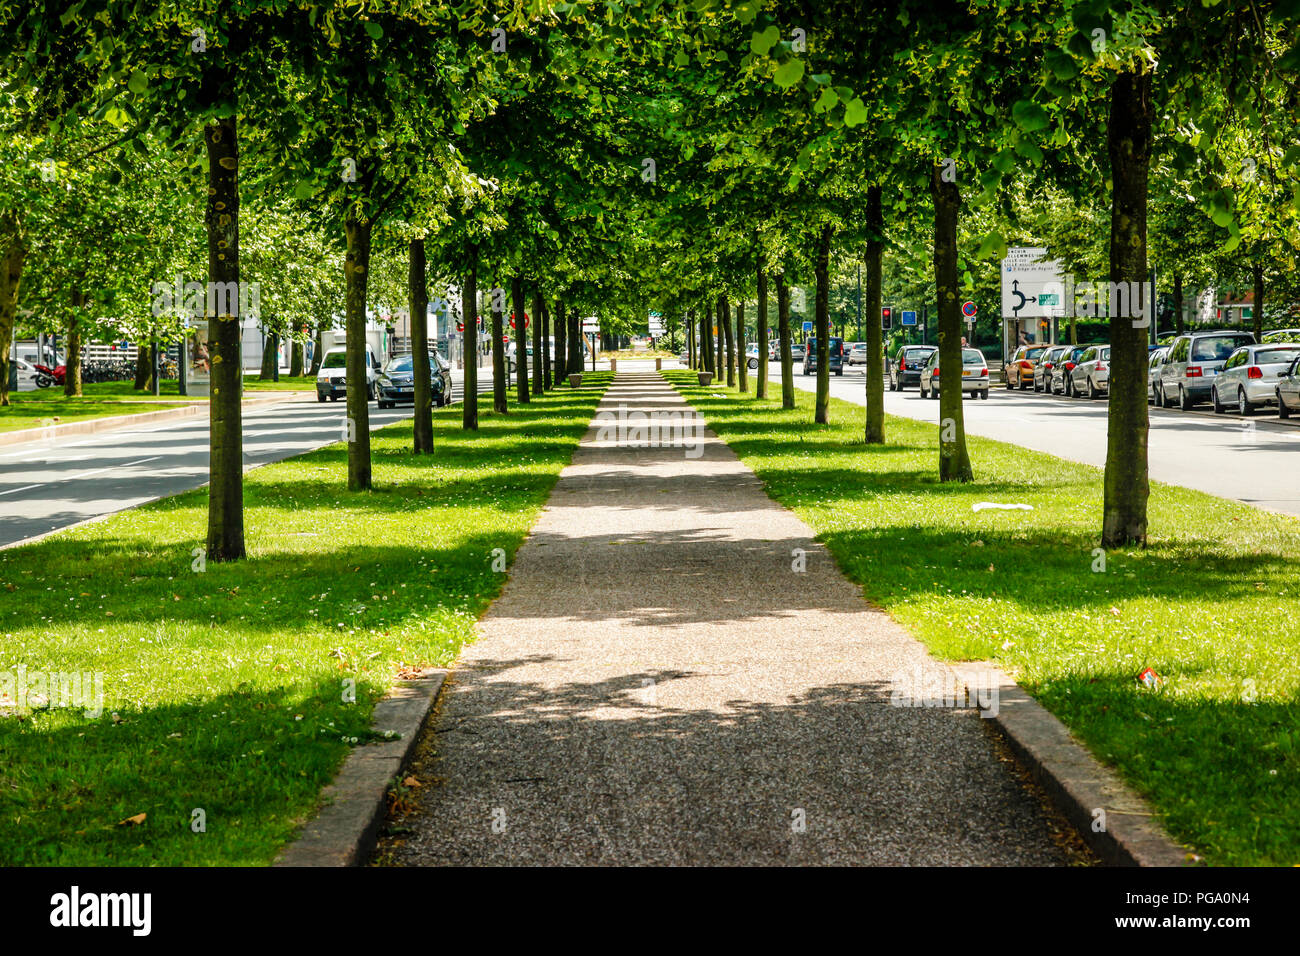 a-beautiful-view-along-the-brick-pedestrian-walkway-between-a-canopy-of-green-trees-on-the-avenue-du-president-hoover-in-lille-france-PGA0N4.jpg